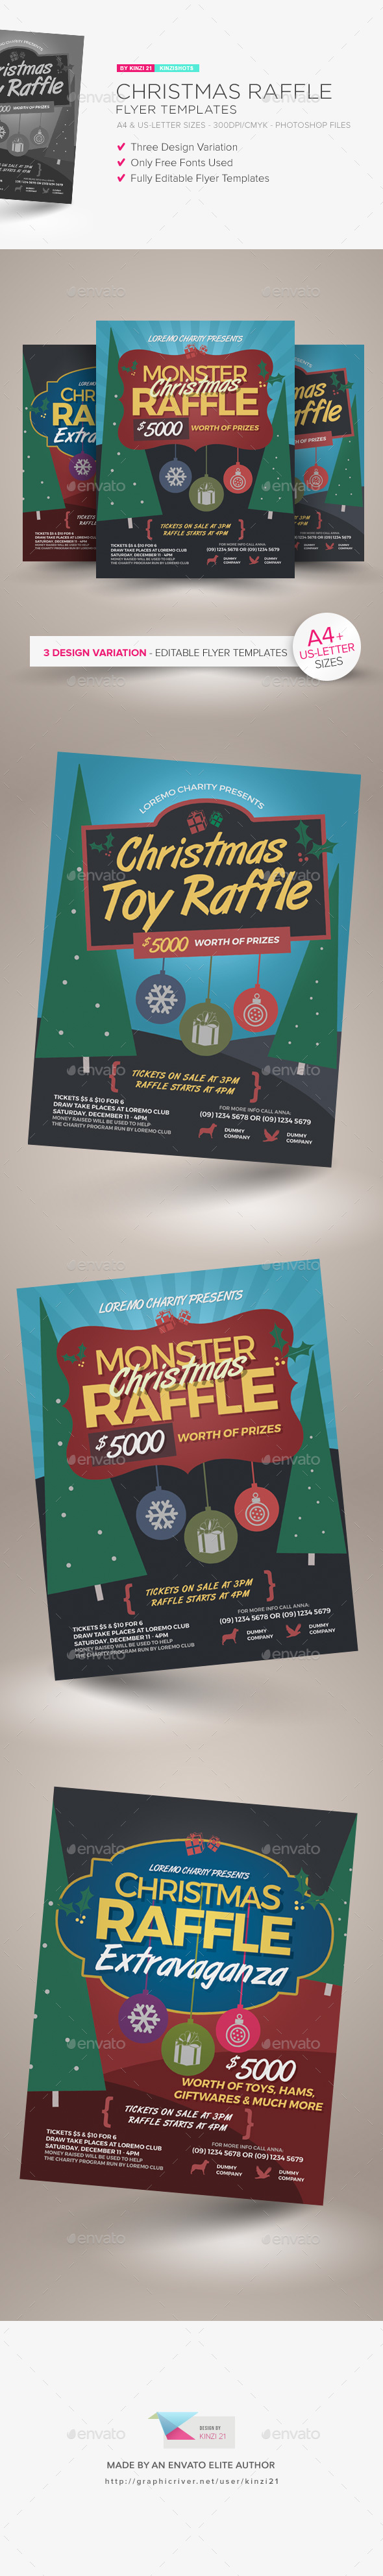 GraphicRiver Christmas Raffle Flyer Templates 21152553